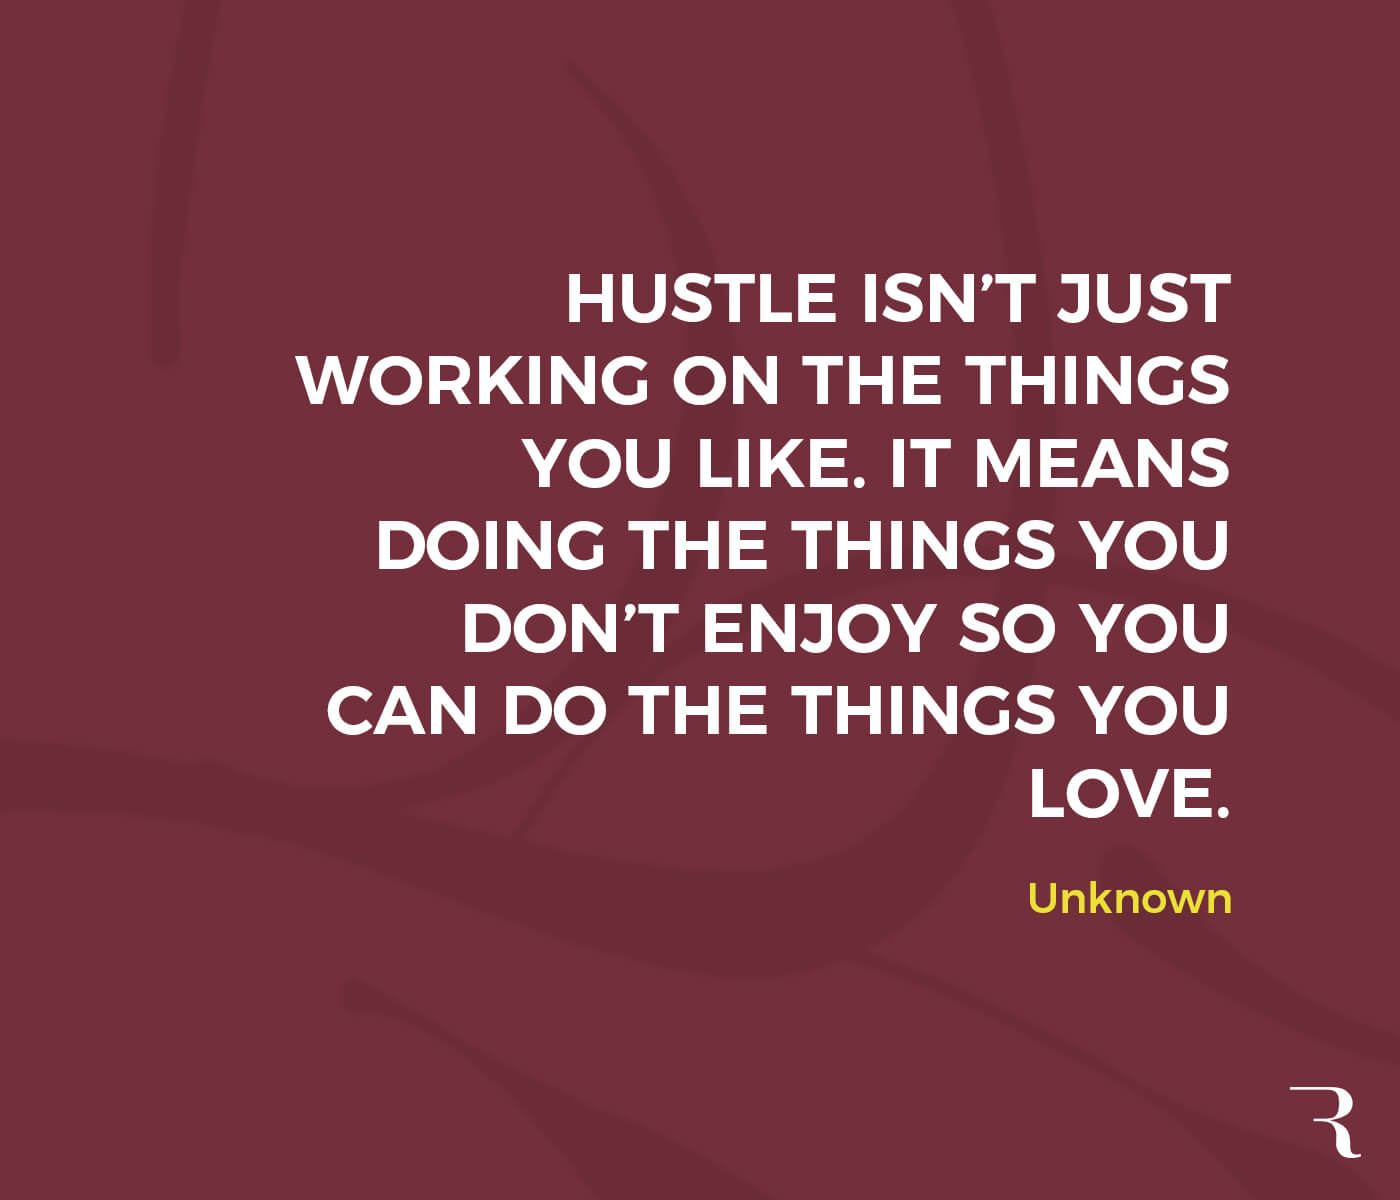 """Motivational Quotes: """"Hustle isn't doing what you like, it's doing the things you don't—so you can do what you love."""" 112 Motivational Quotes to Be a Better Entrepreneur"""